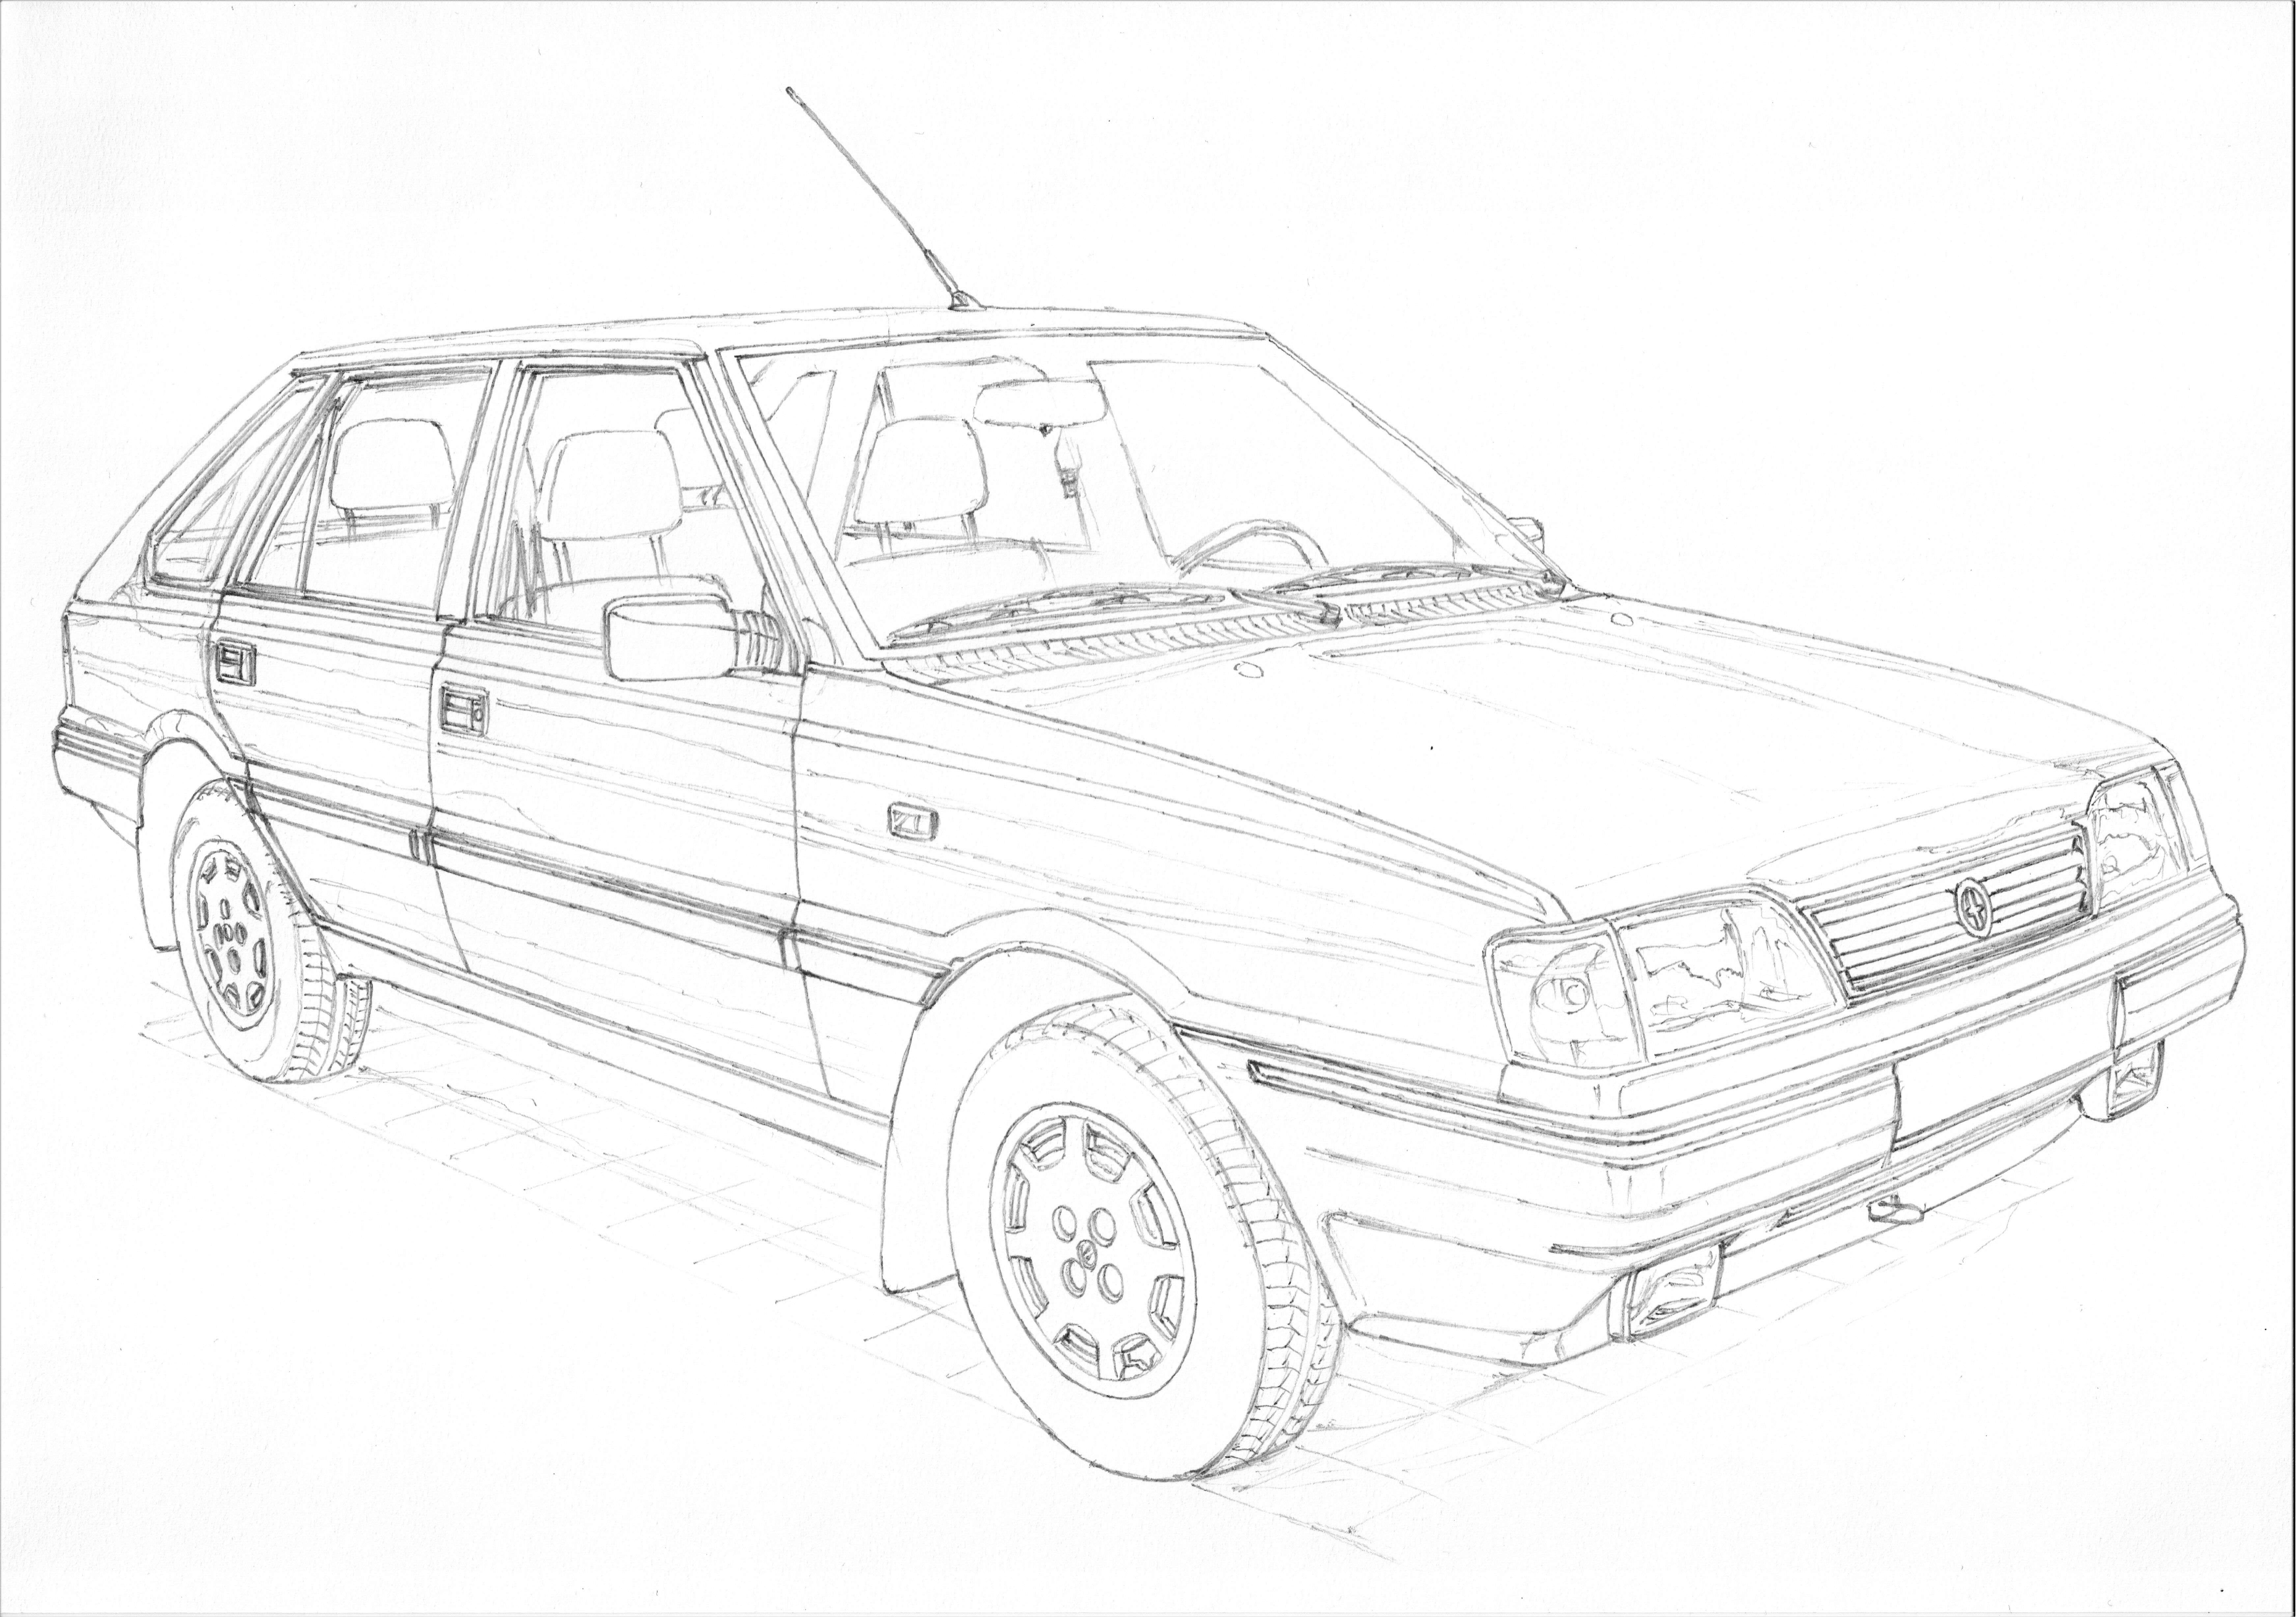 Fso Polonez Caro 1 3 Simple Old Polish Car How Many Legends Are There About This Relic Of The Communist Regime Which In Democratic P Car Polish Hatchback Car